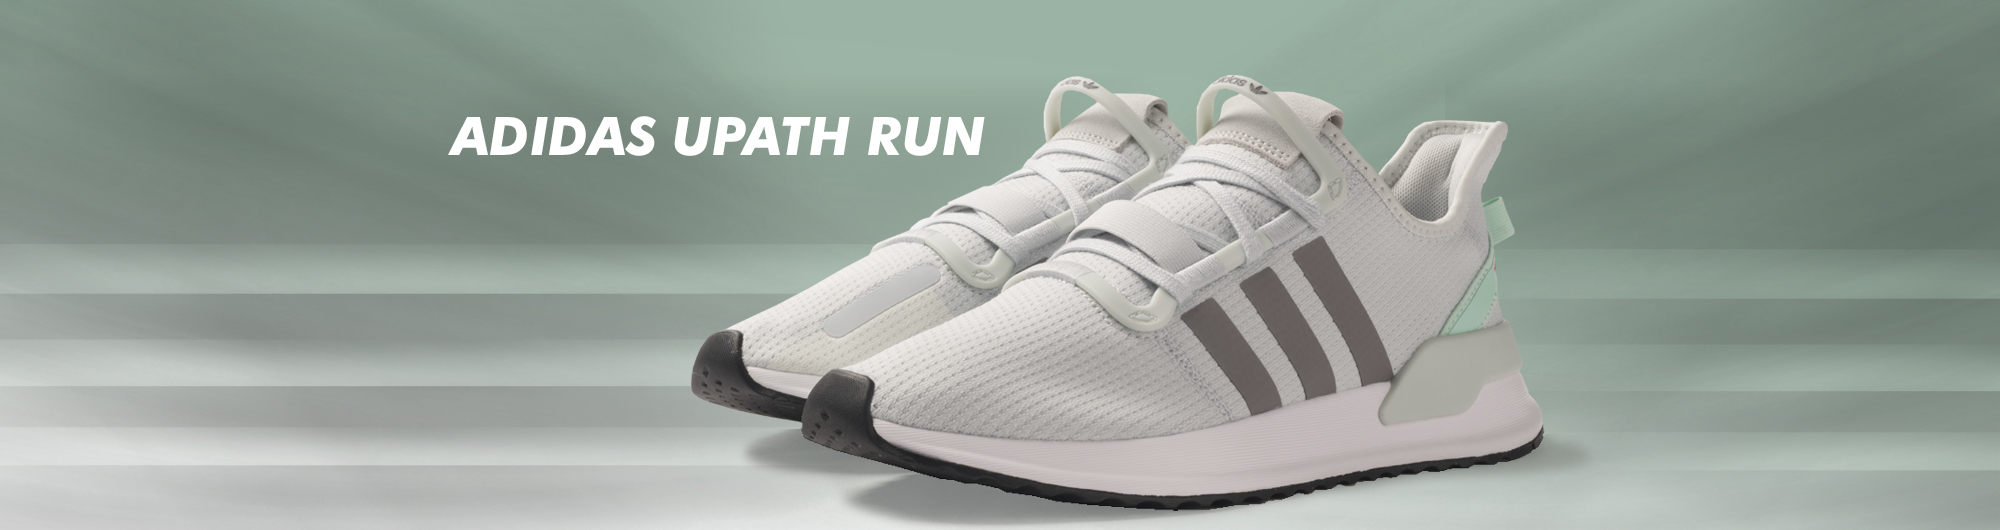 b_desk_p2_13_03_19 - adidas_UPATH